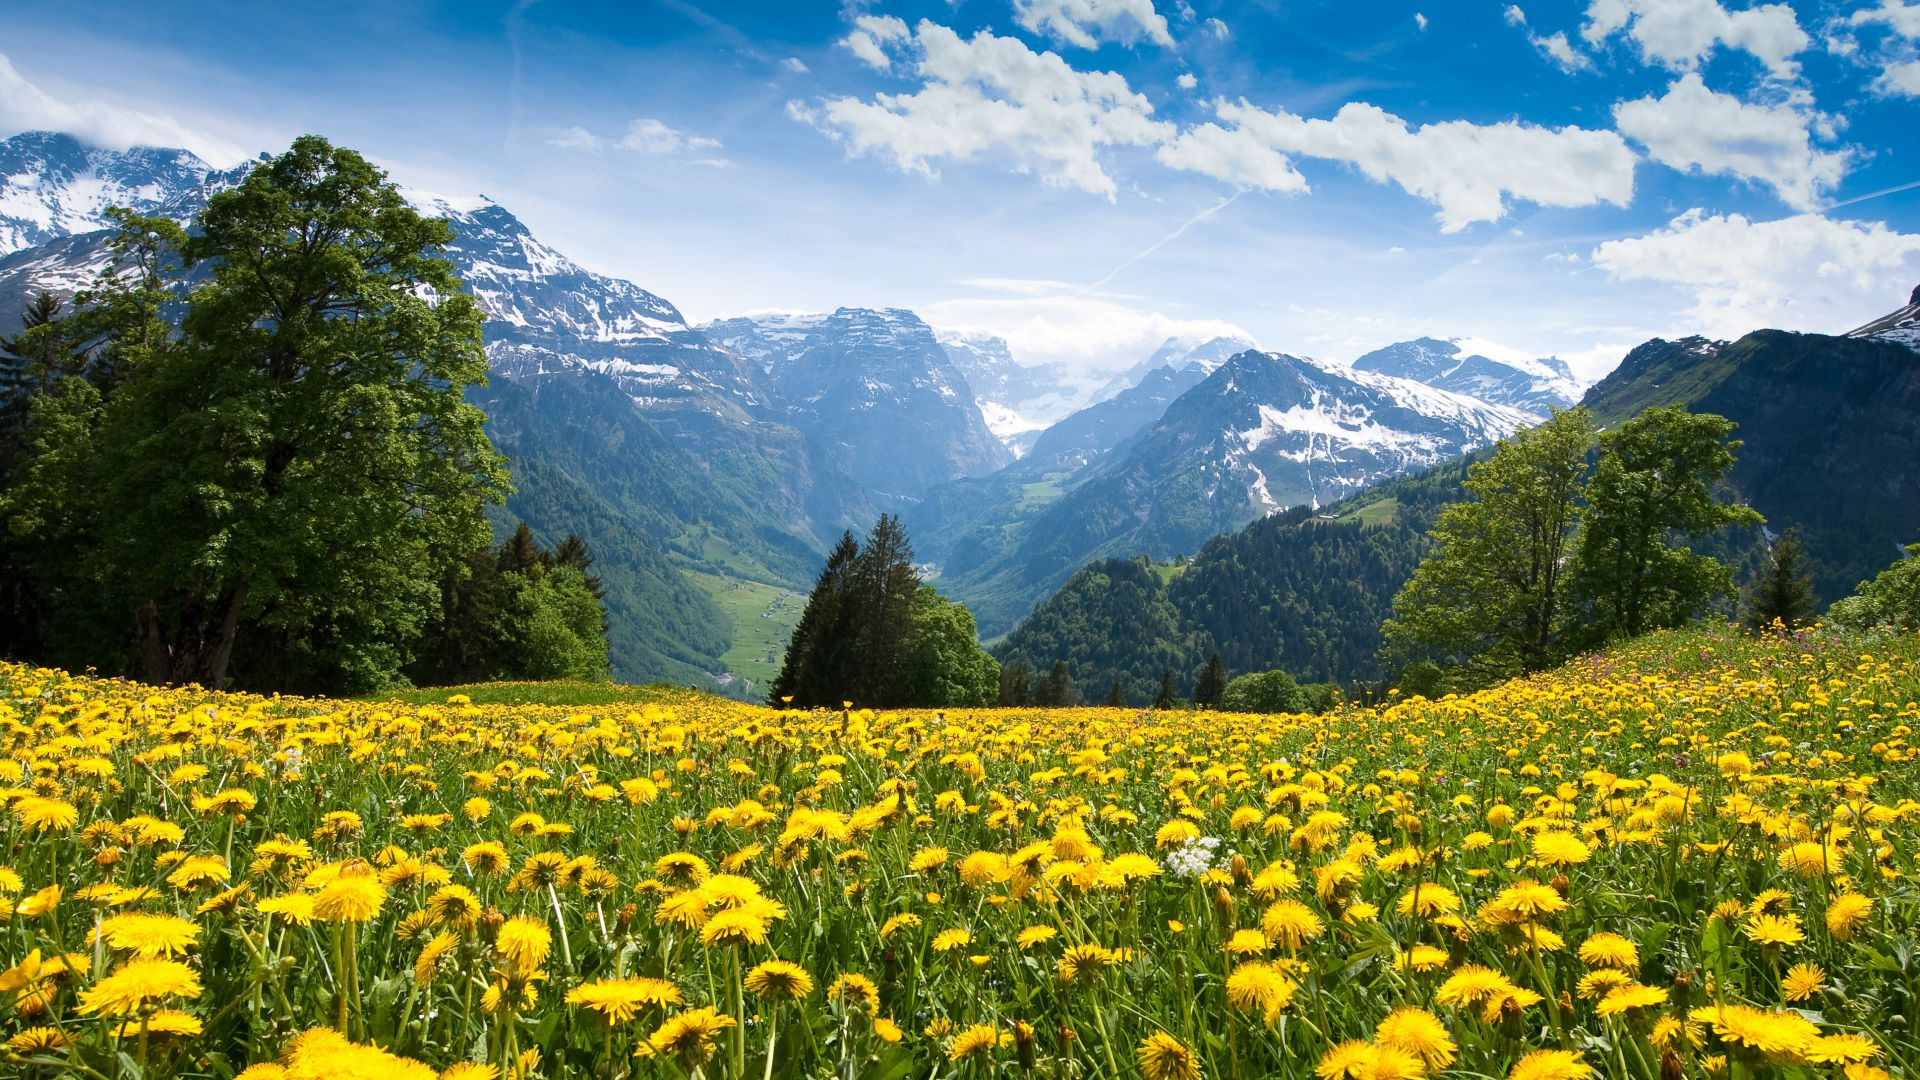 Альпы, 4k, HD, Франция, горы, одуванчик, луга, небо, Alps, 4k, HD wallpaper, France, mountains, dandelion, meadows, sky (horizontal)